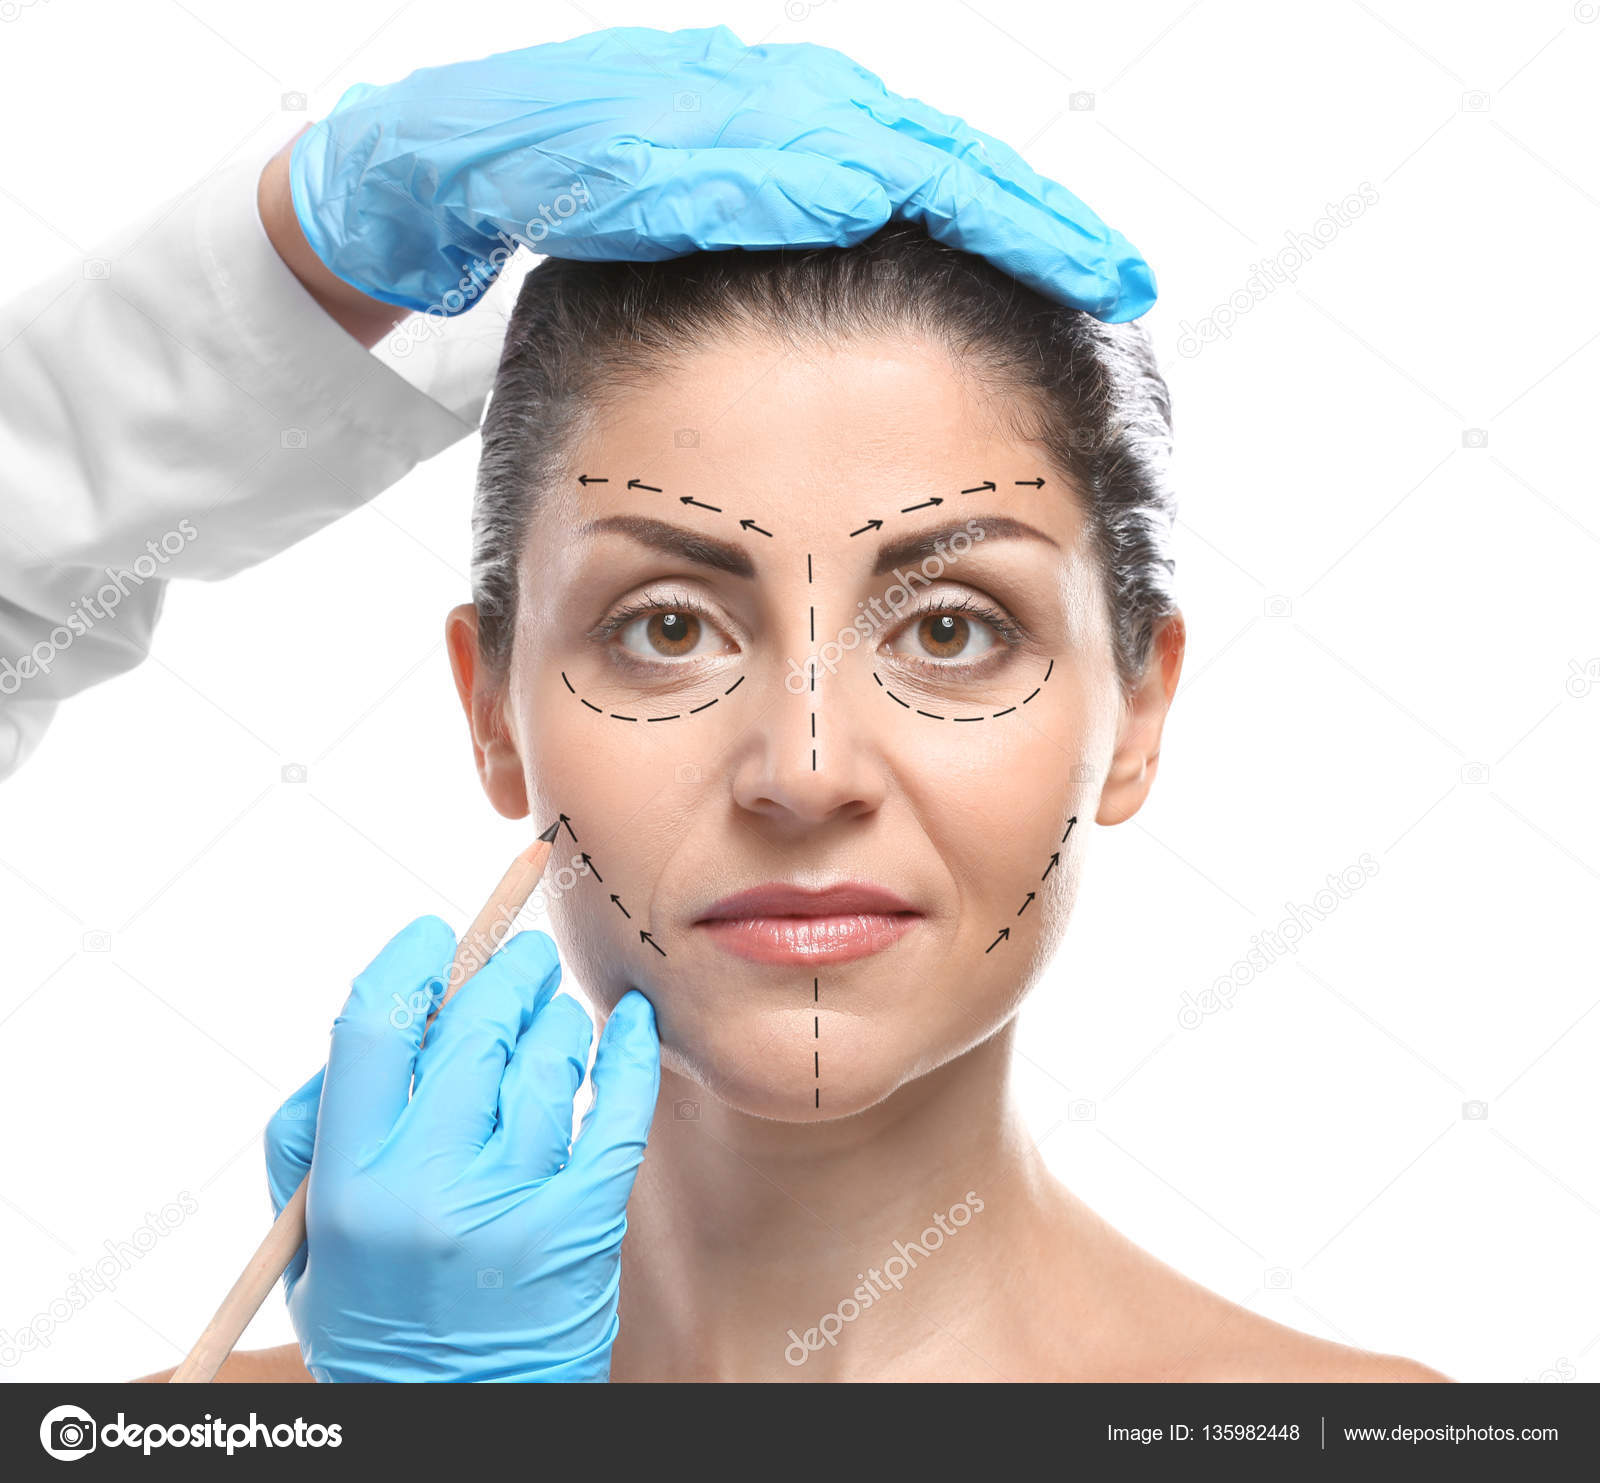 1600x1483 Surgeon Drawing Marks On Female Face Against White Background